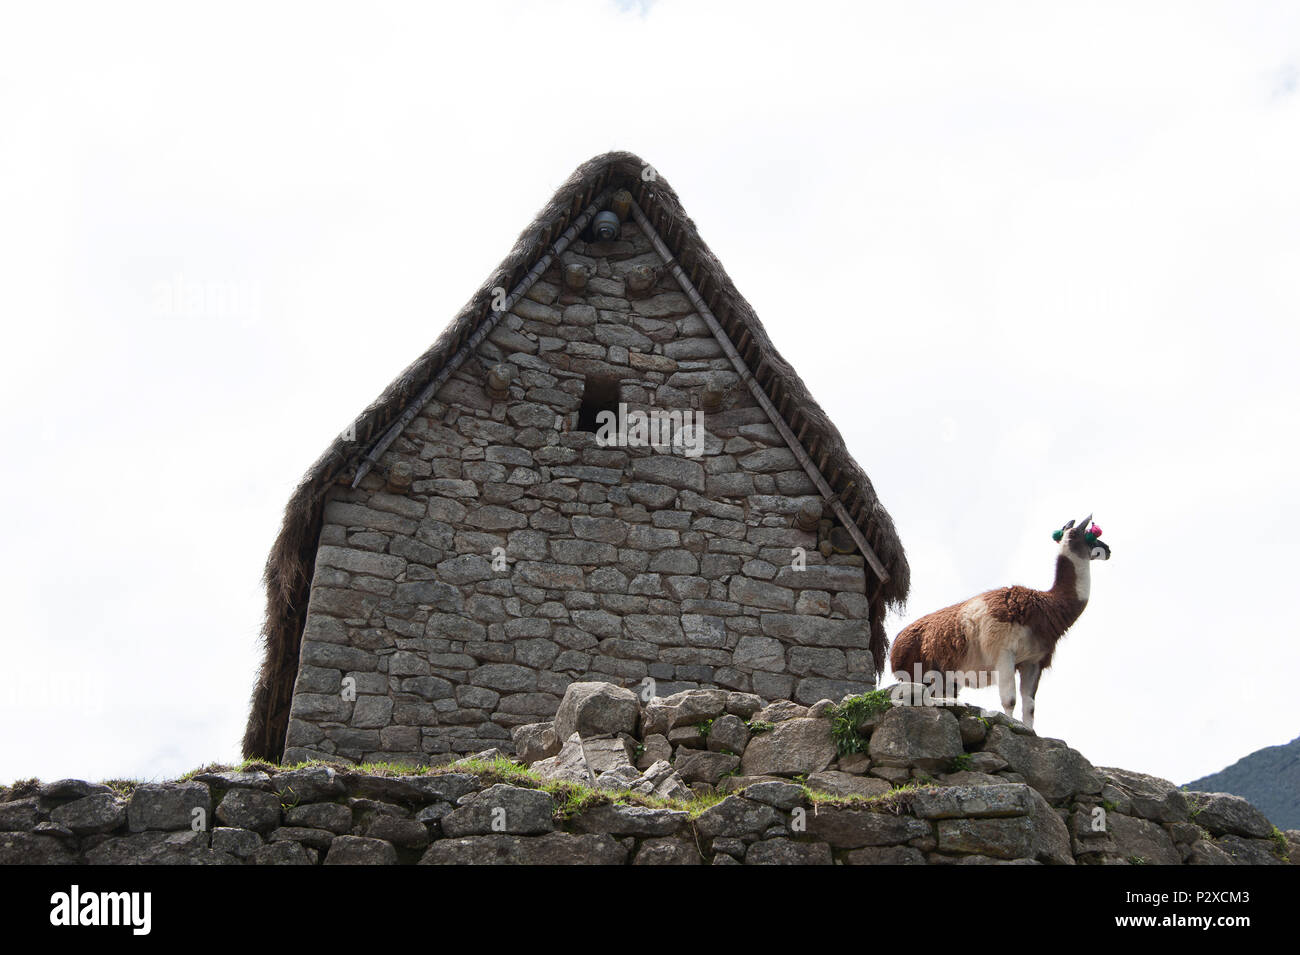 A Llama stands in front of an old building on the highest peak of Machu Picchu and looks across the valley - Stock Image